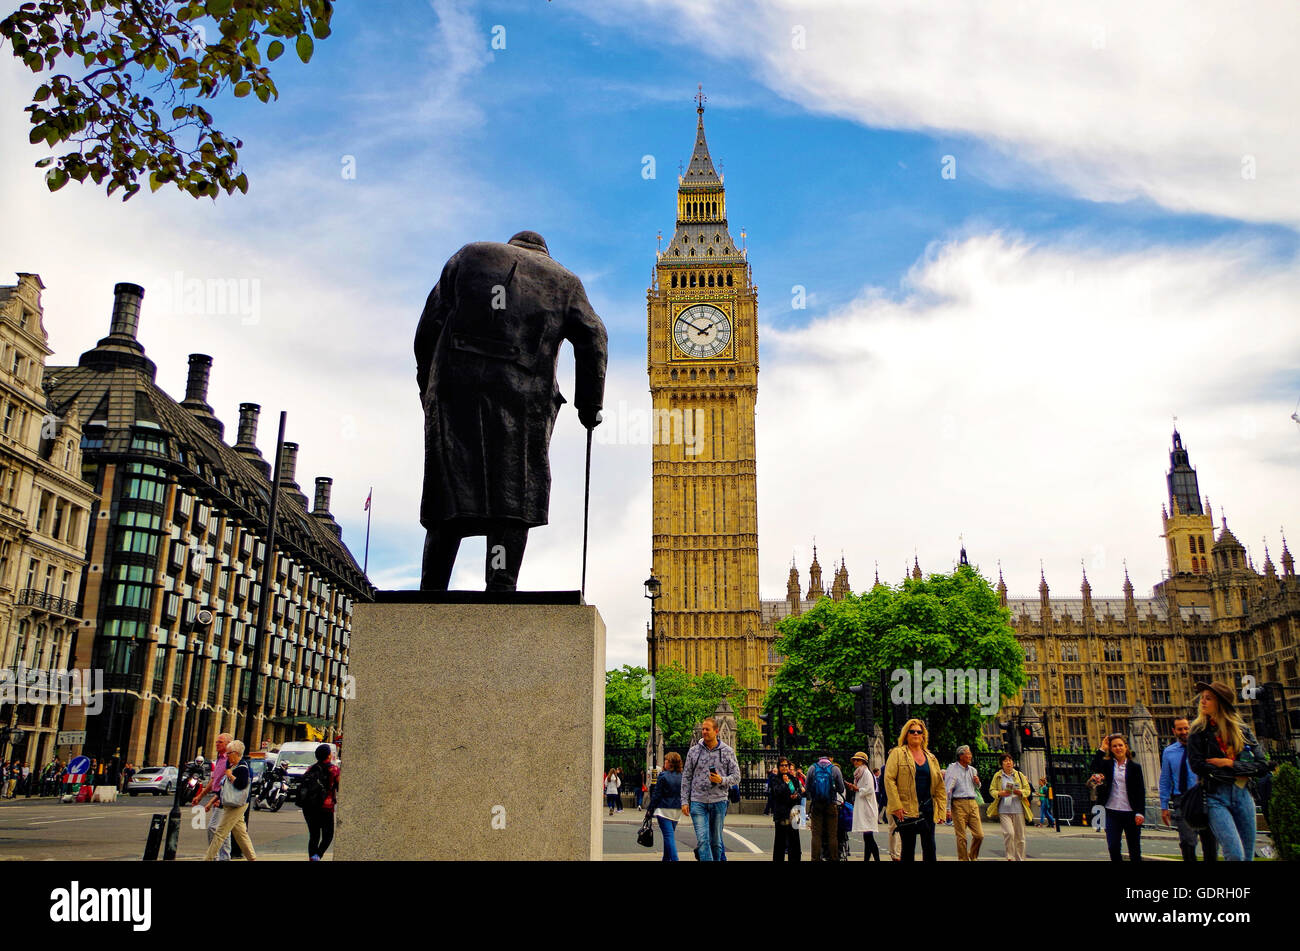 The statue of Sir Winston Churchill gazes upon the majestic Big Ben, a popular tourist spot, in London. - Stock Image